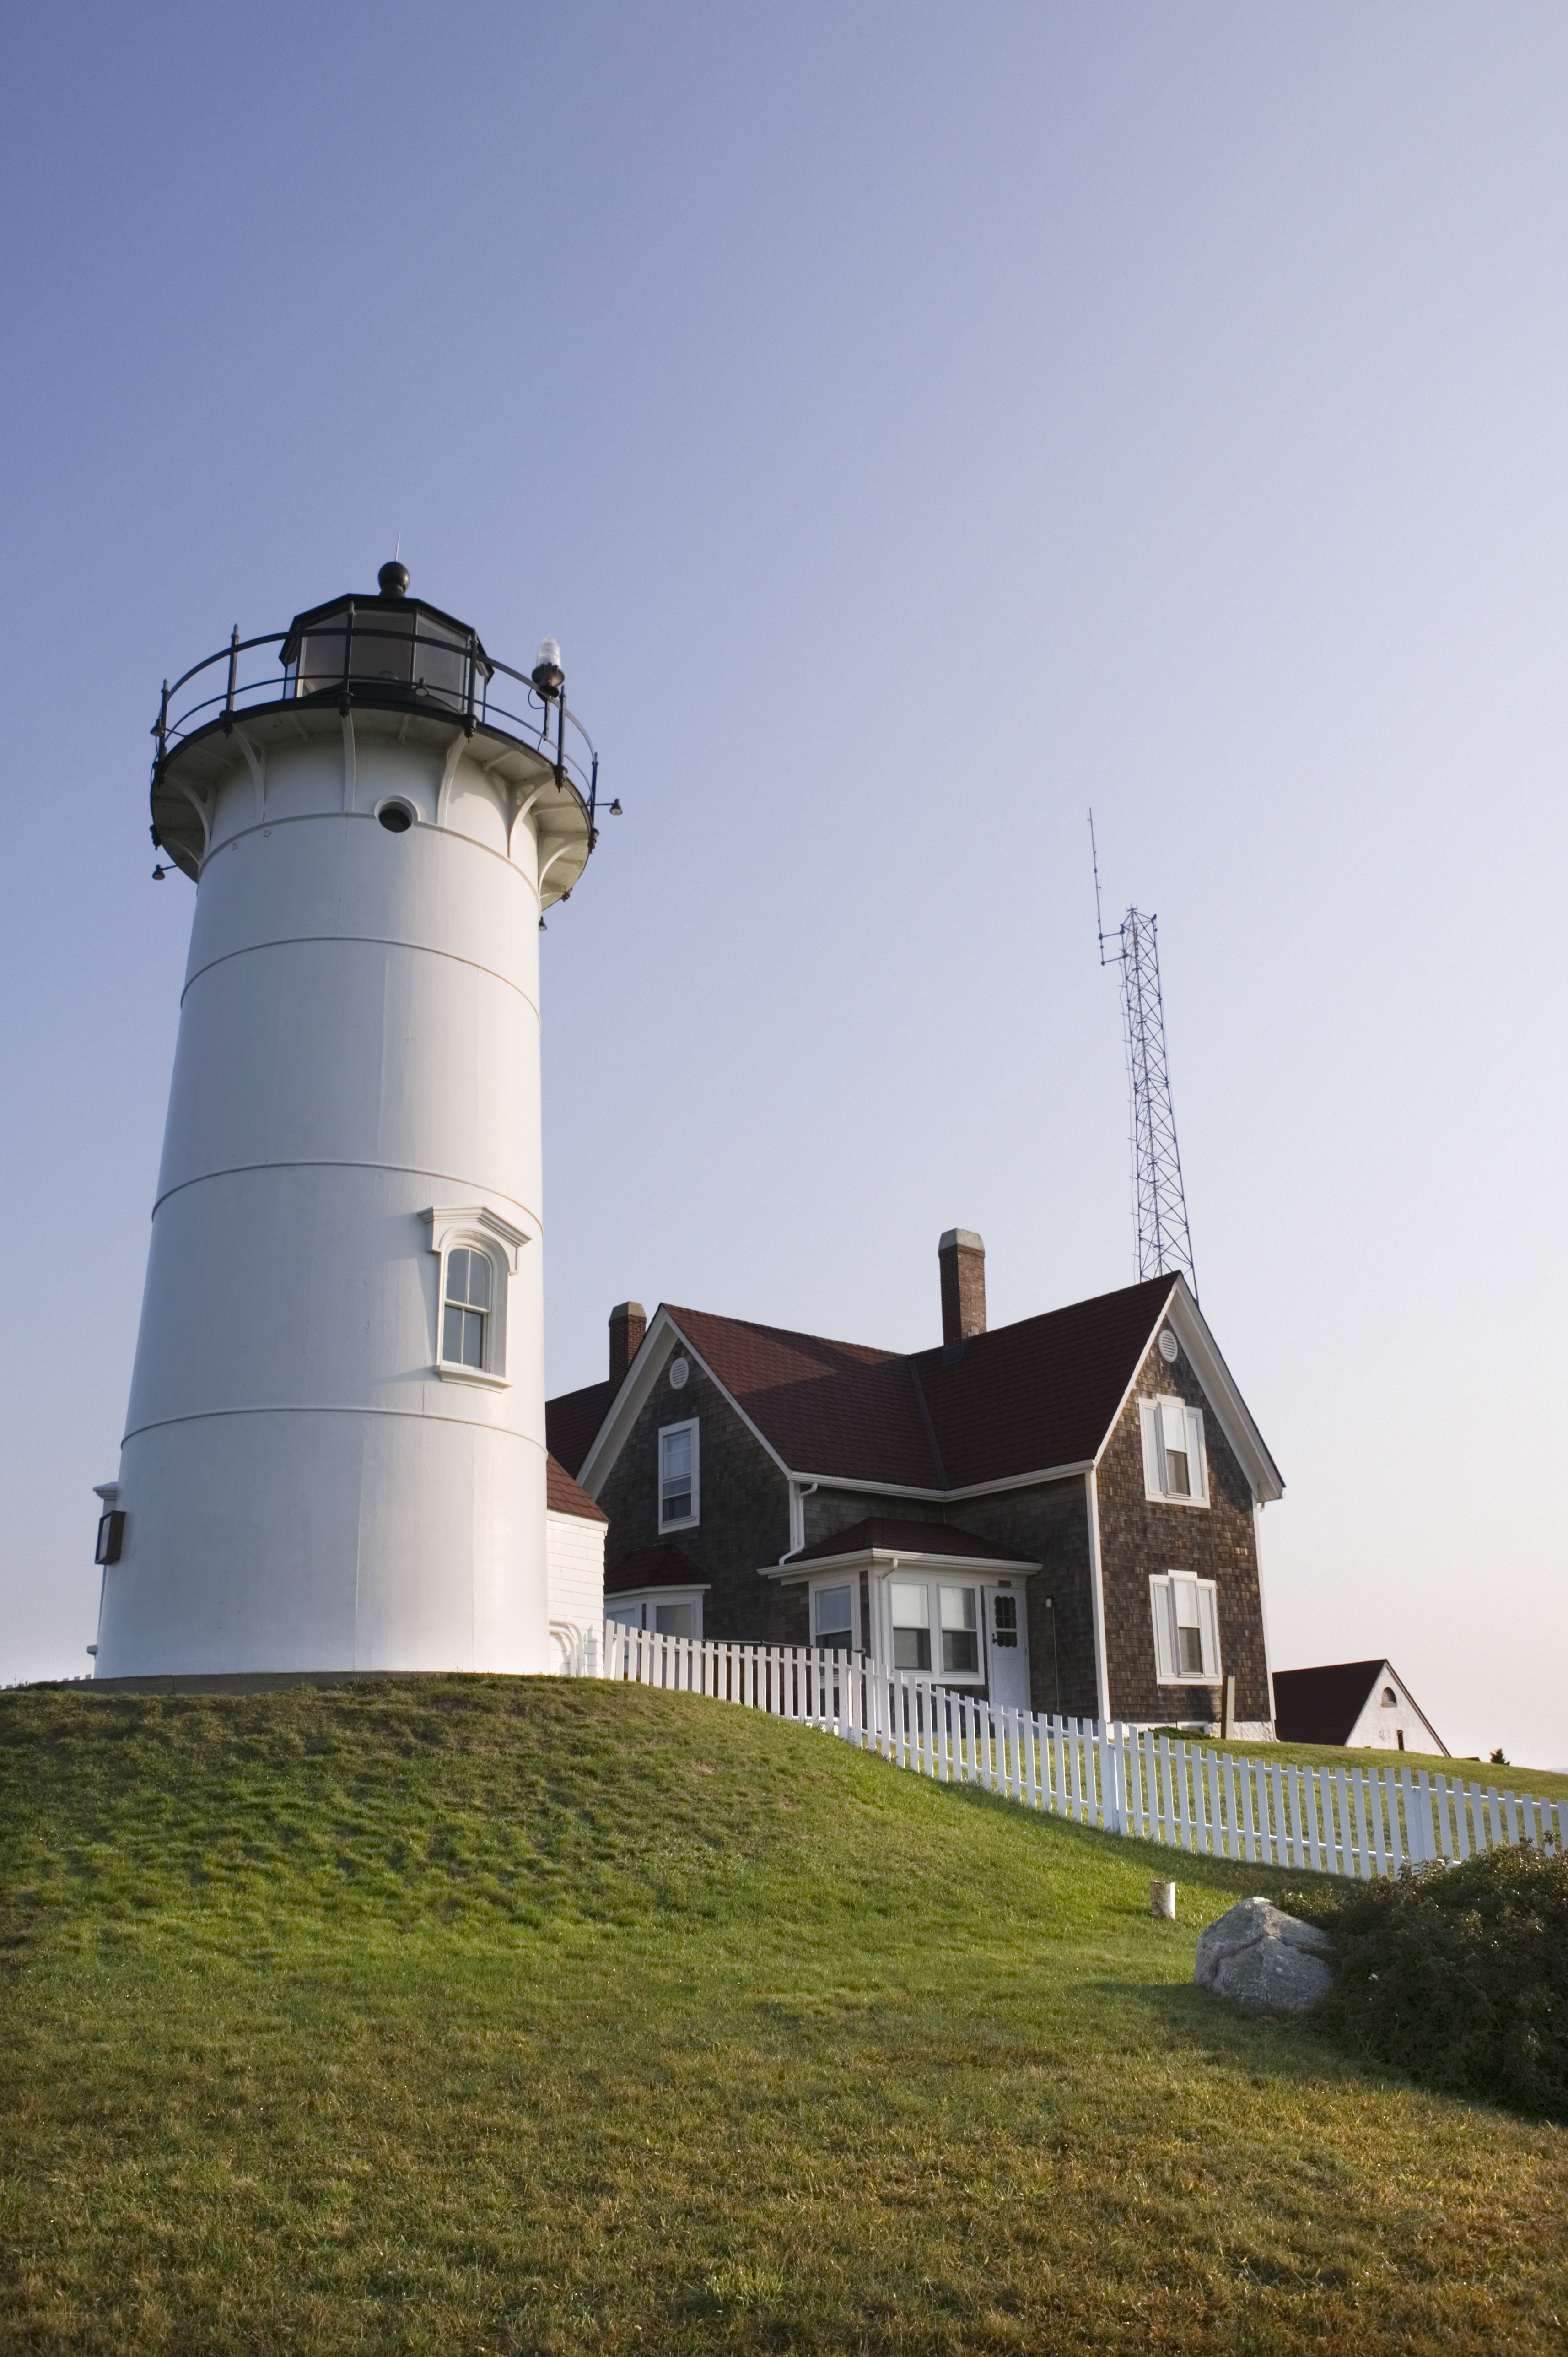 best small towns for summer vacation - towns to visit this summer